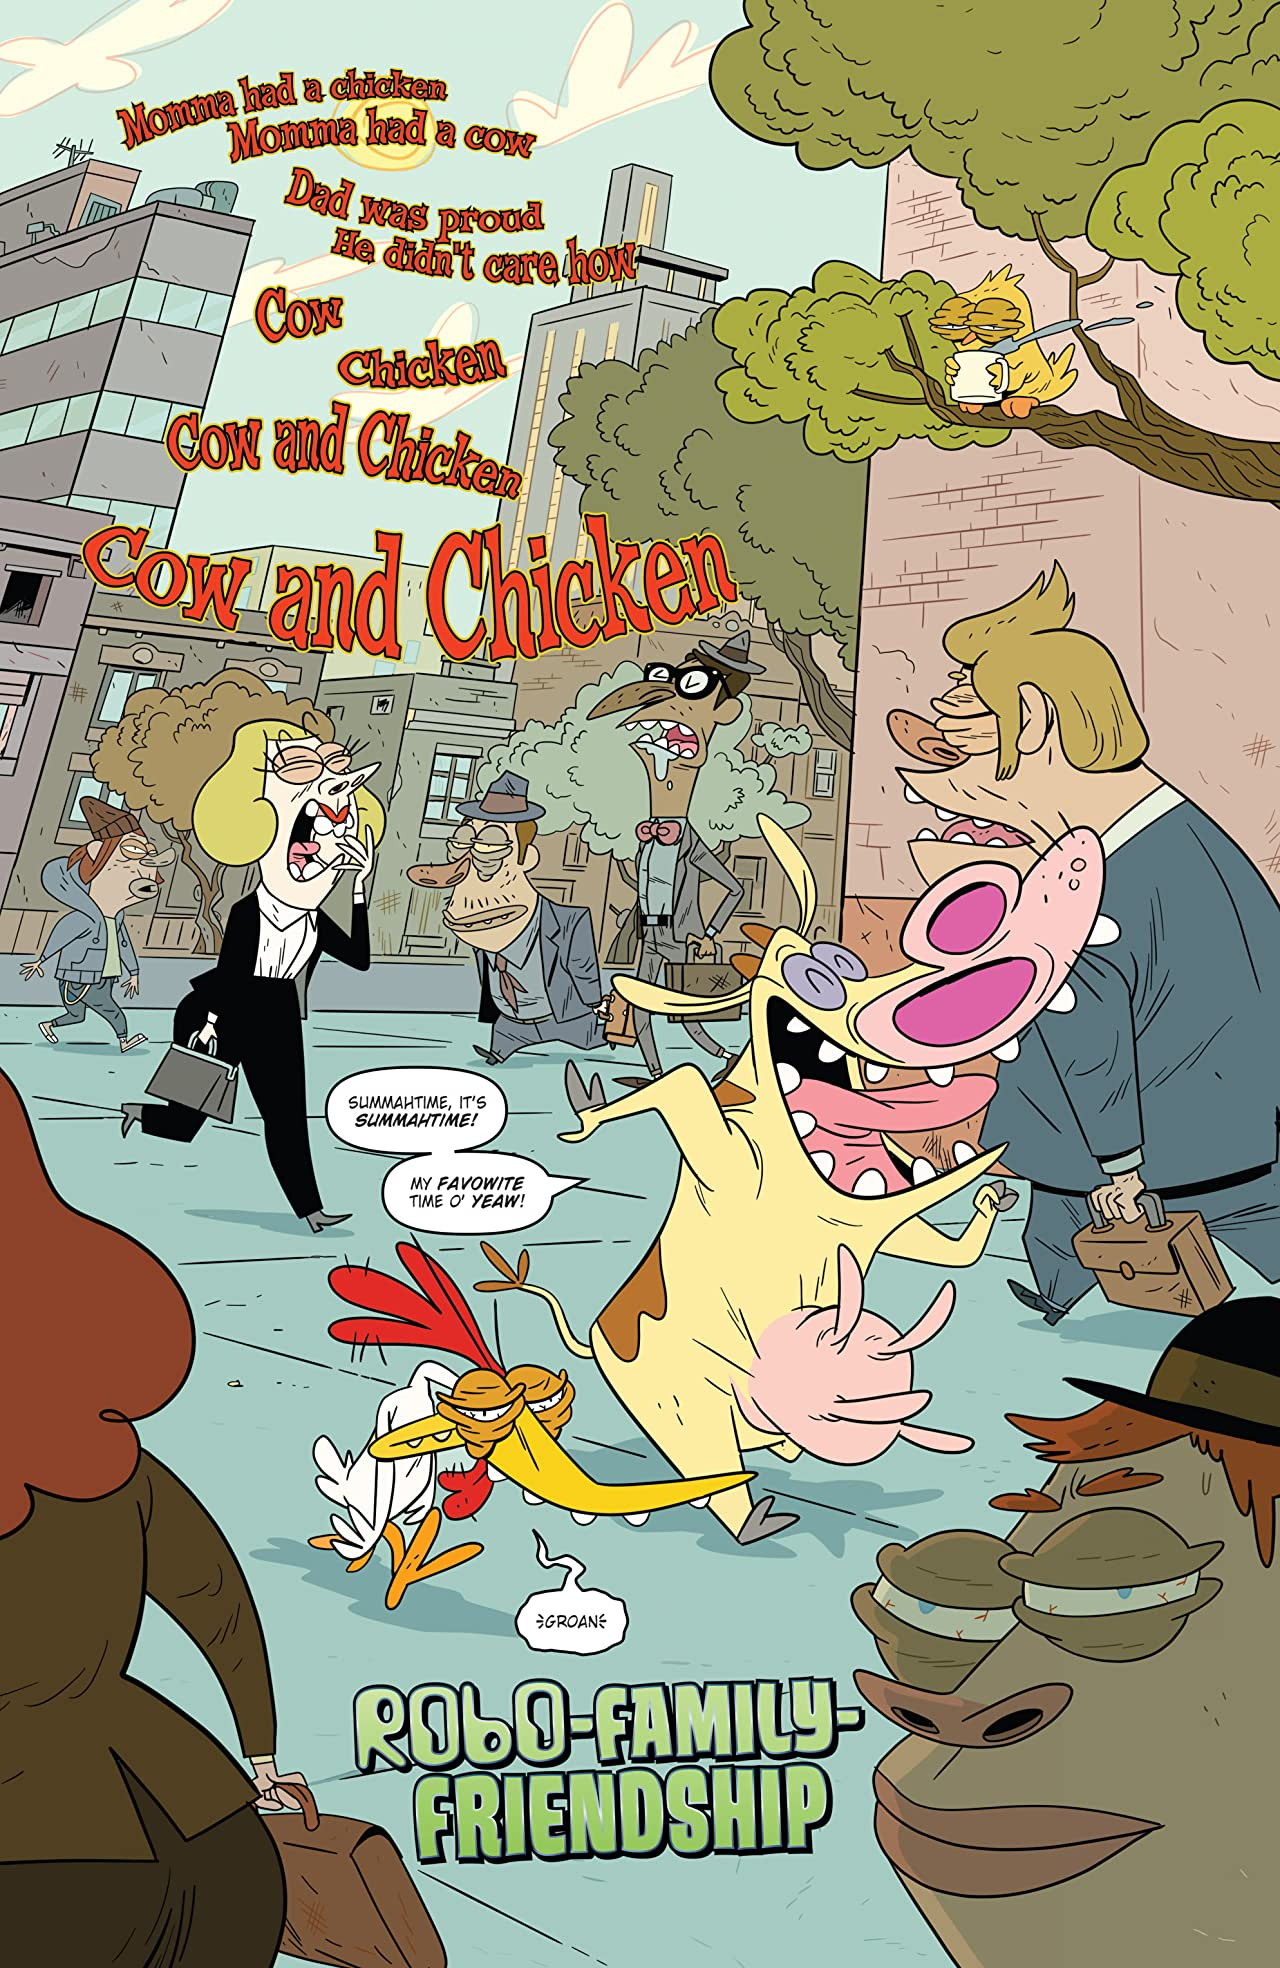 Cartoon Network: Super Secret Crisis War!: Cow and Chicken #1